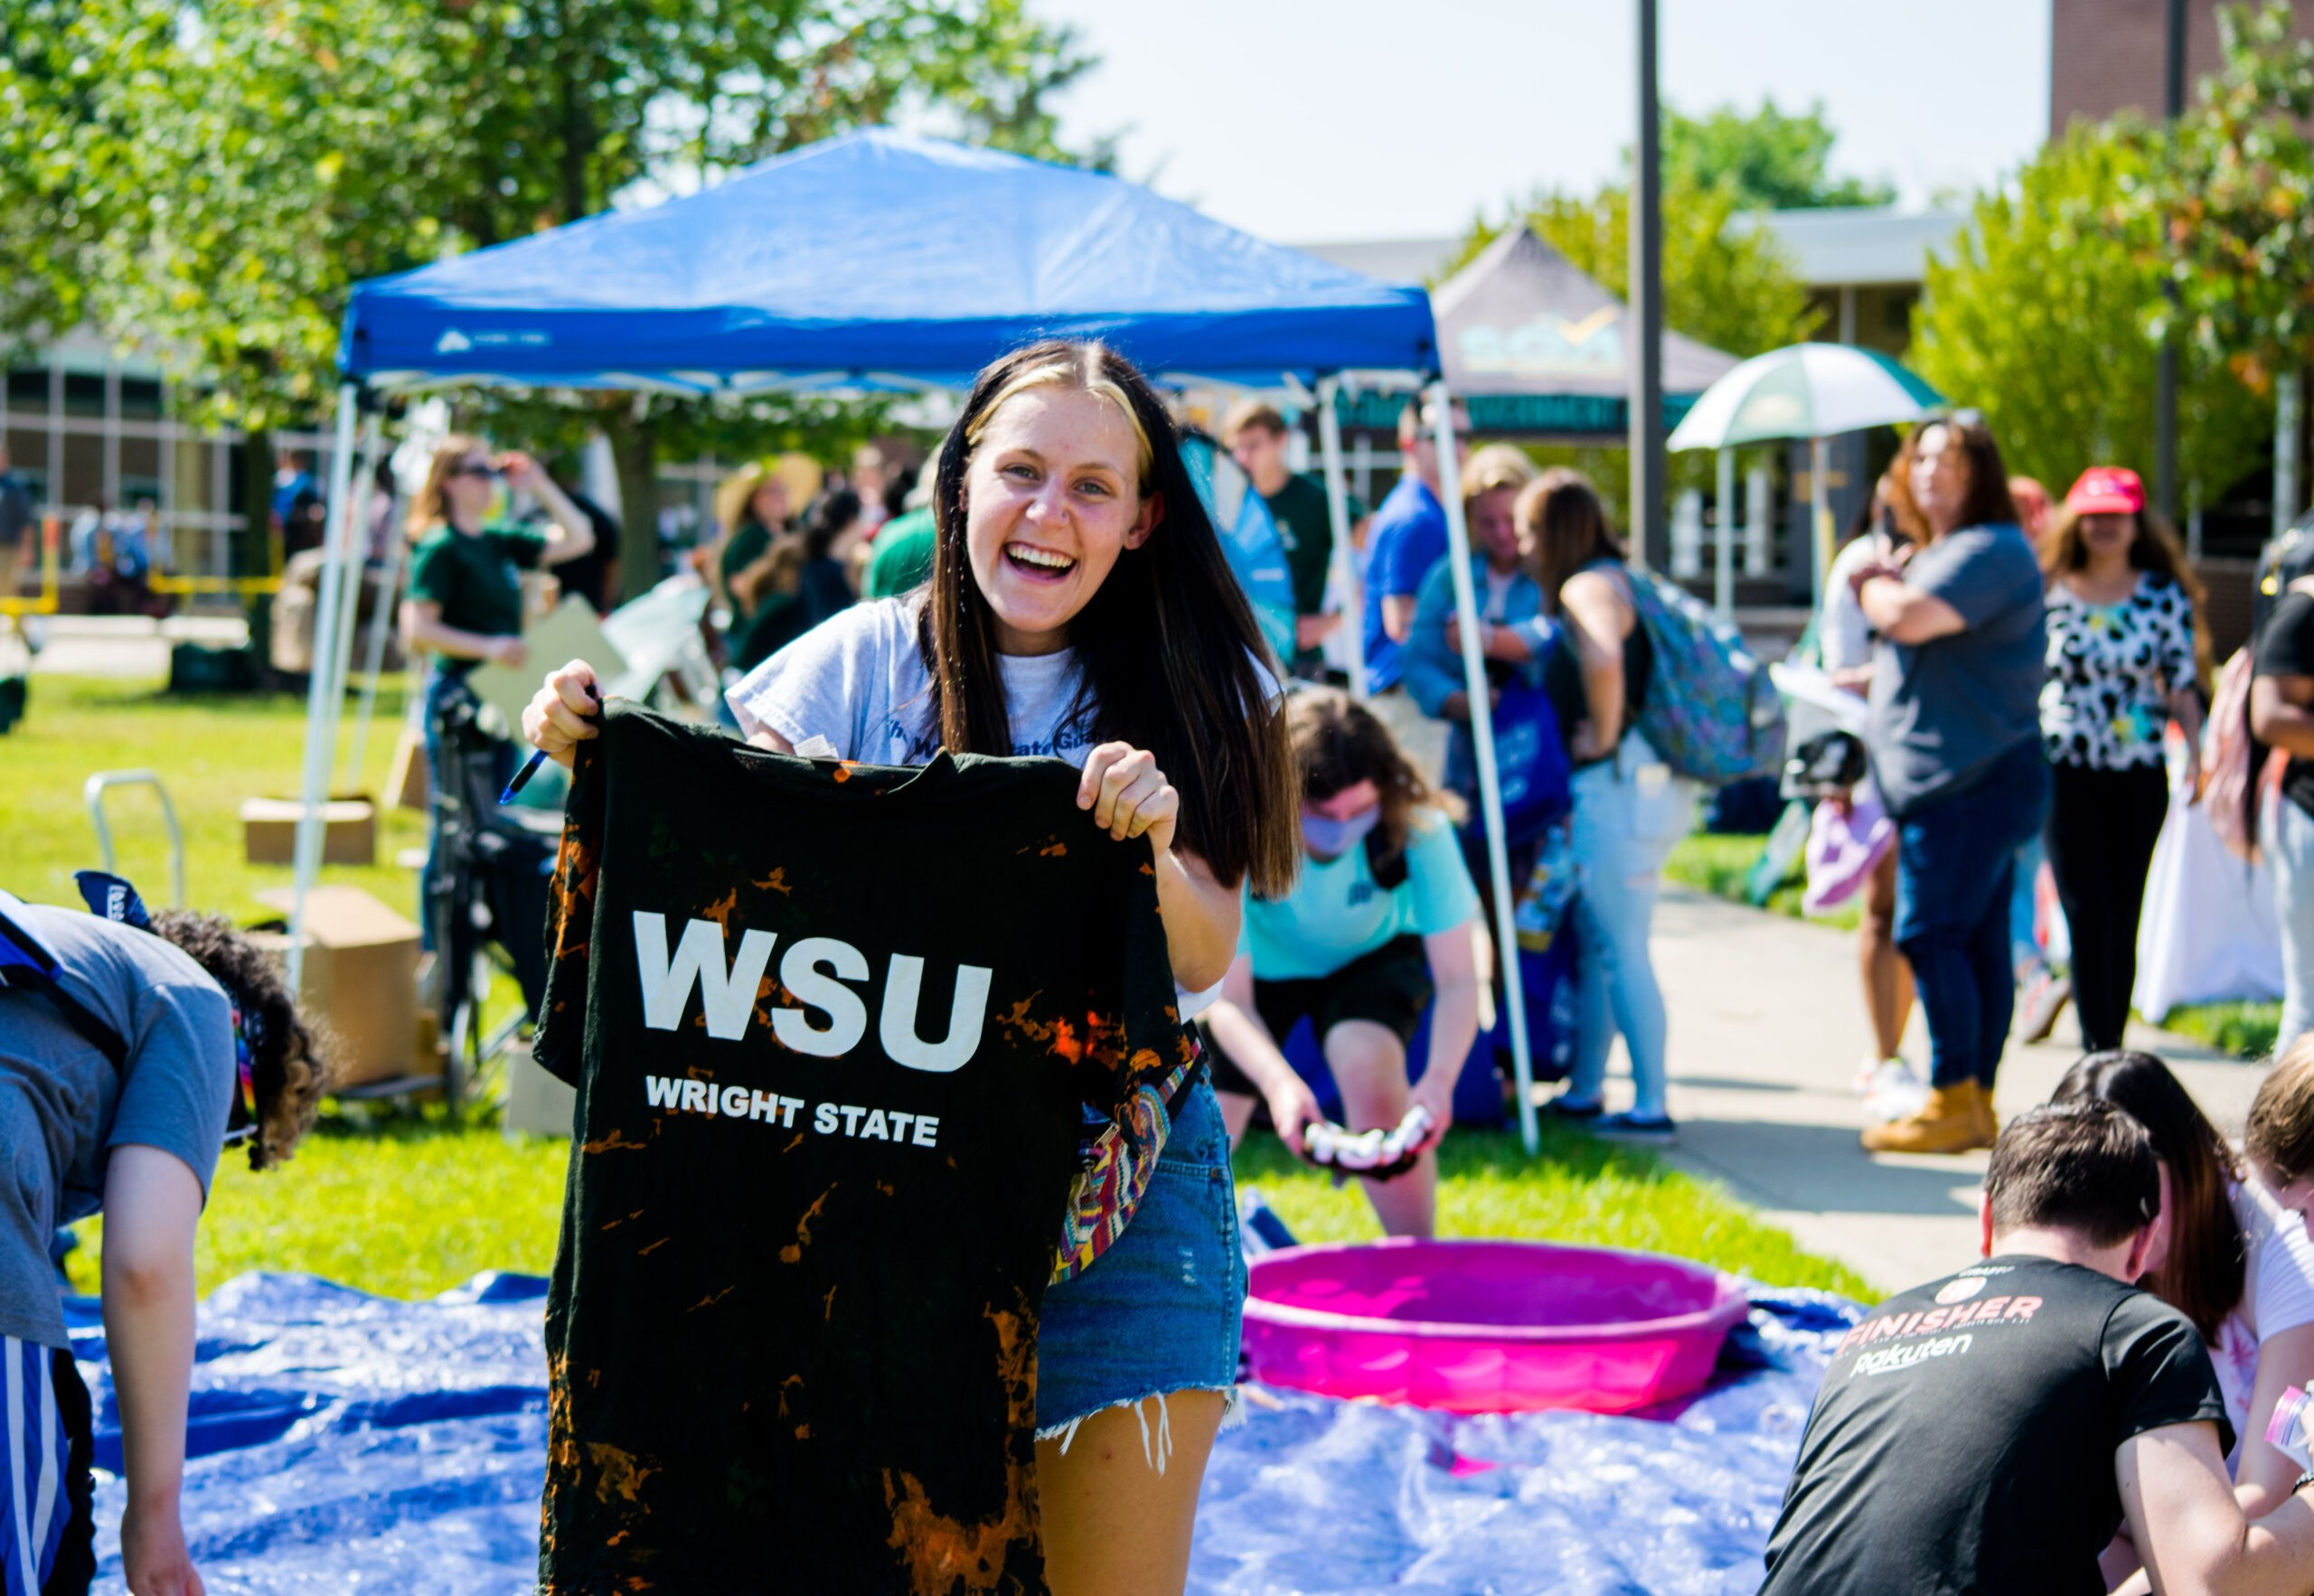 student holding up WSU t-shirt at fall festival